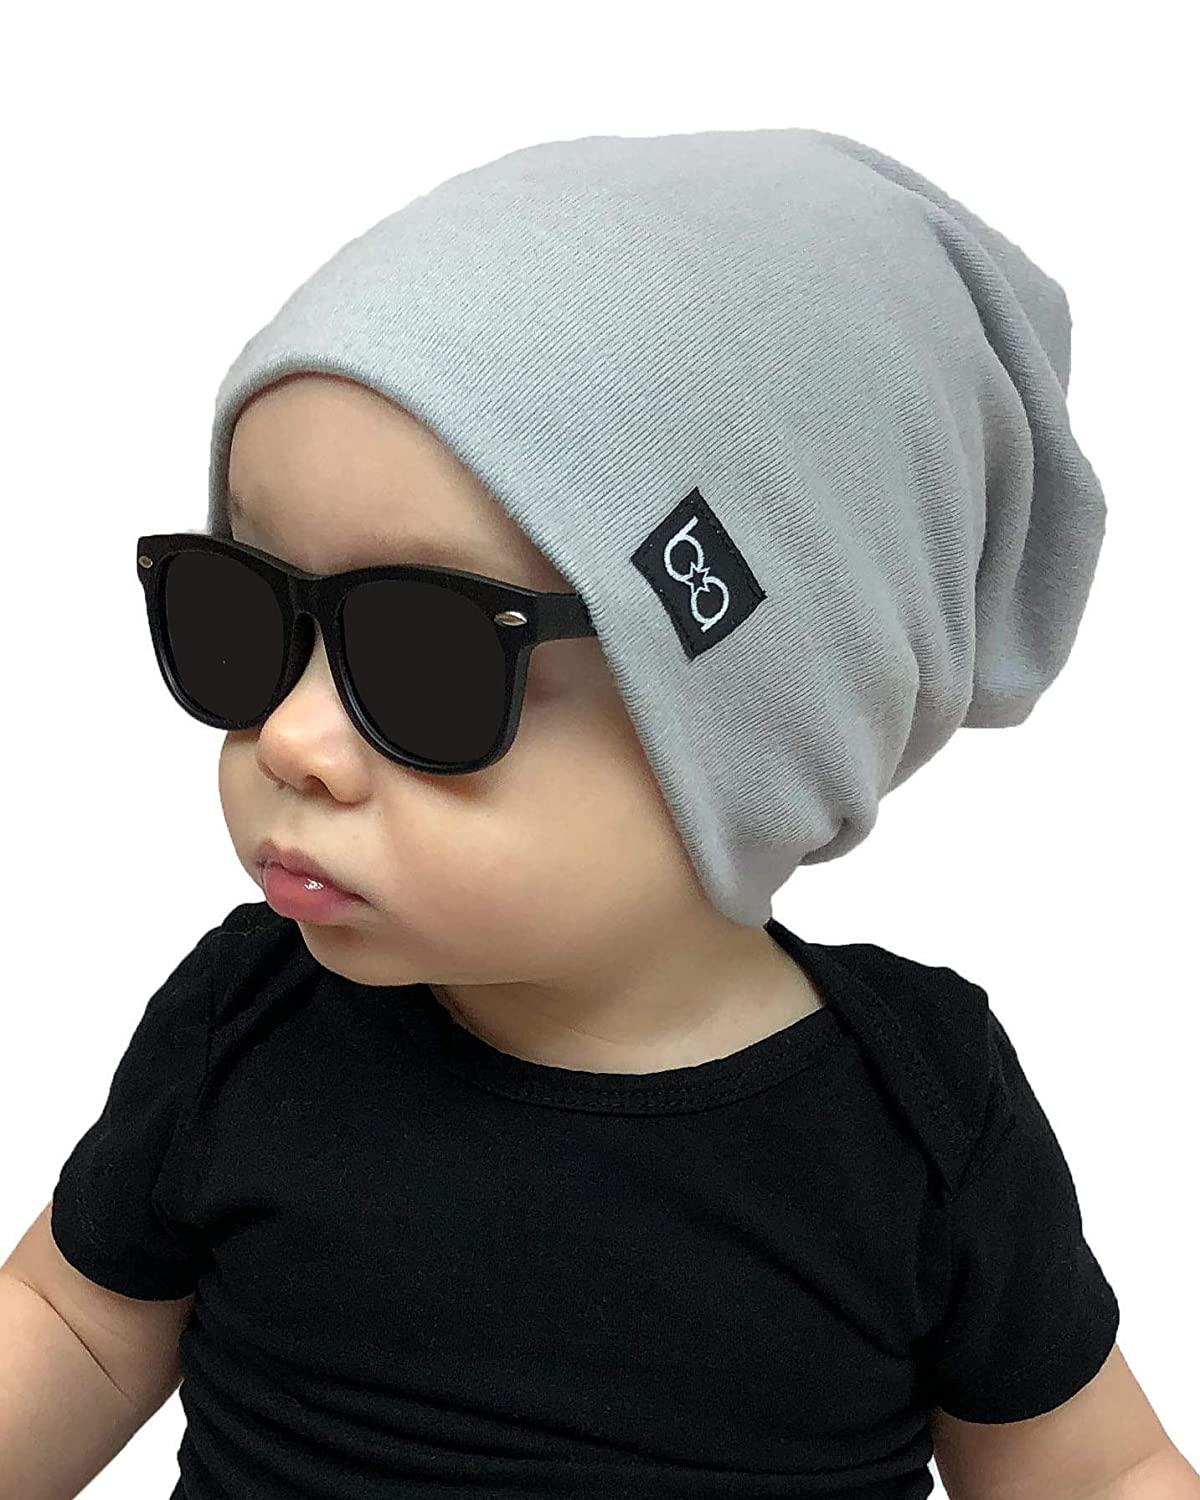 Babyfied Apparel Cotton Slouchy Baby Beanie Hat 0-2 Yrs